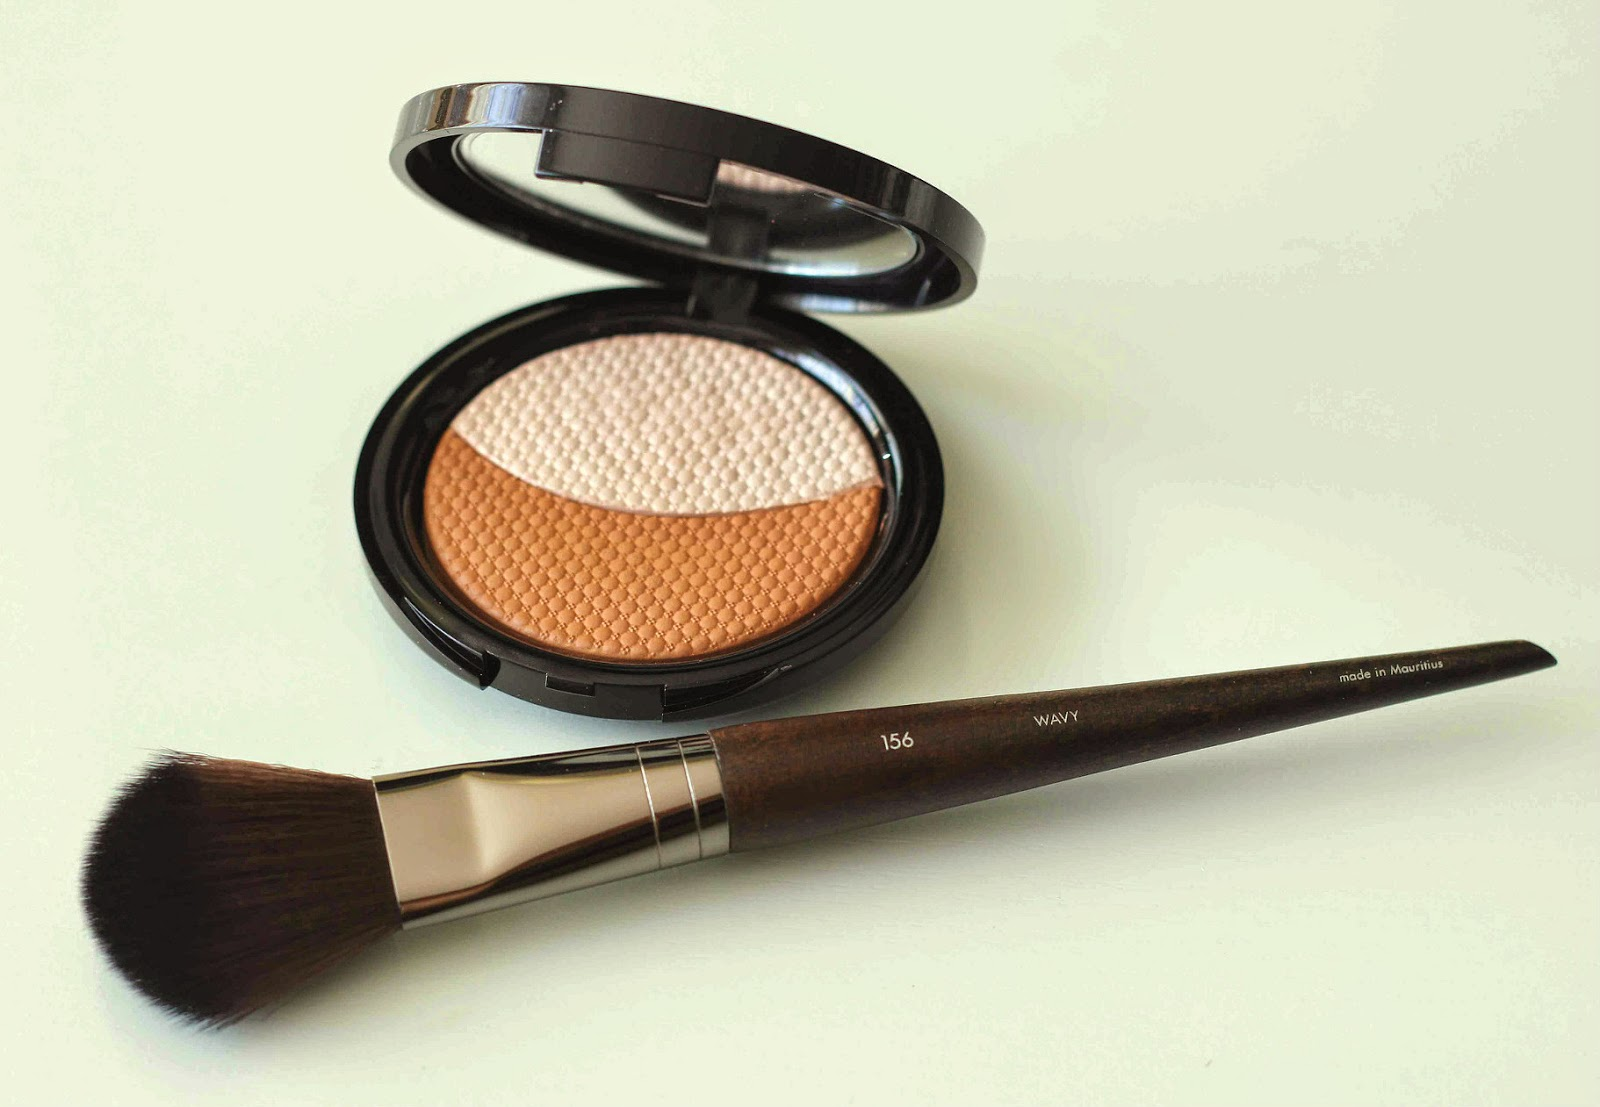 Make Up For Ever Pro Sculpting Duo in #1 Pink Beige and #156 Large Flat Blush Brush   Review